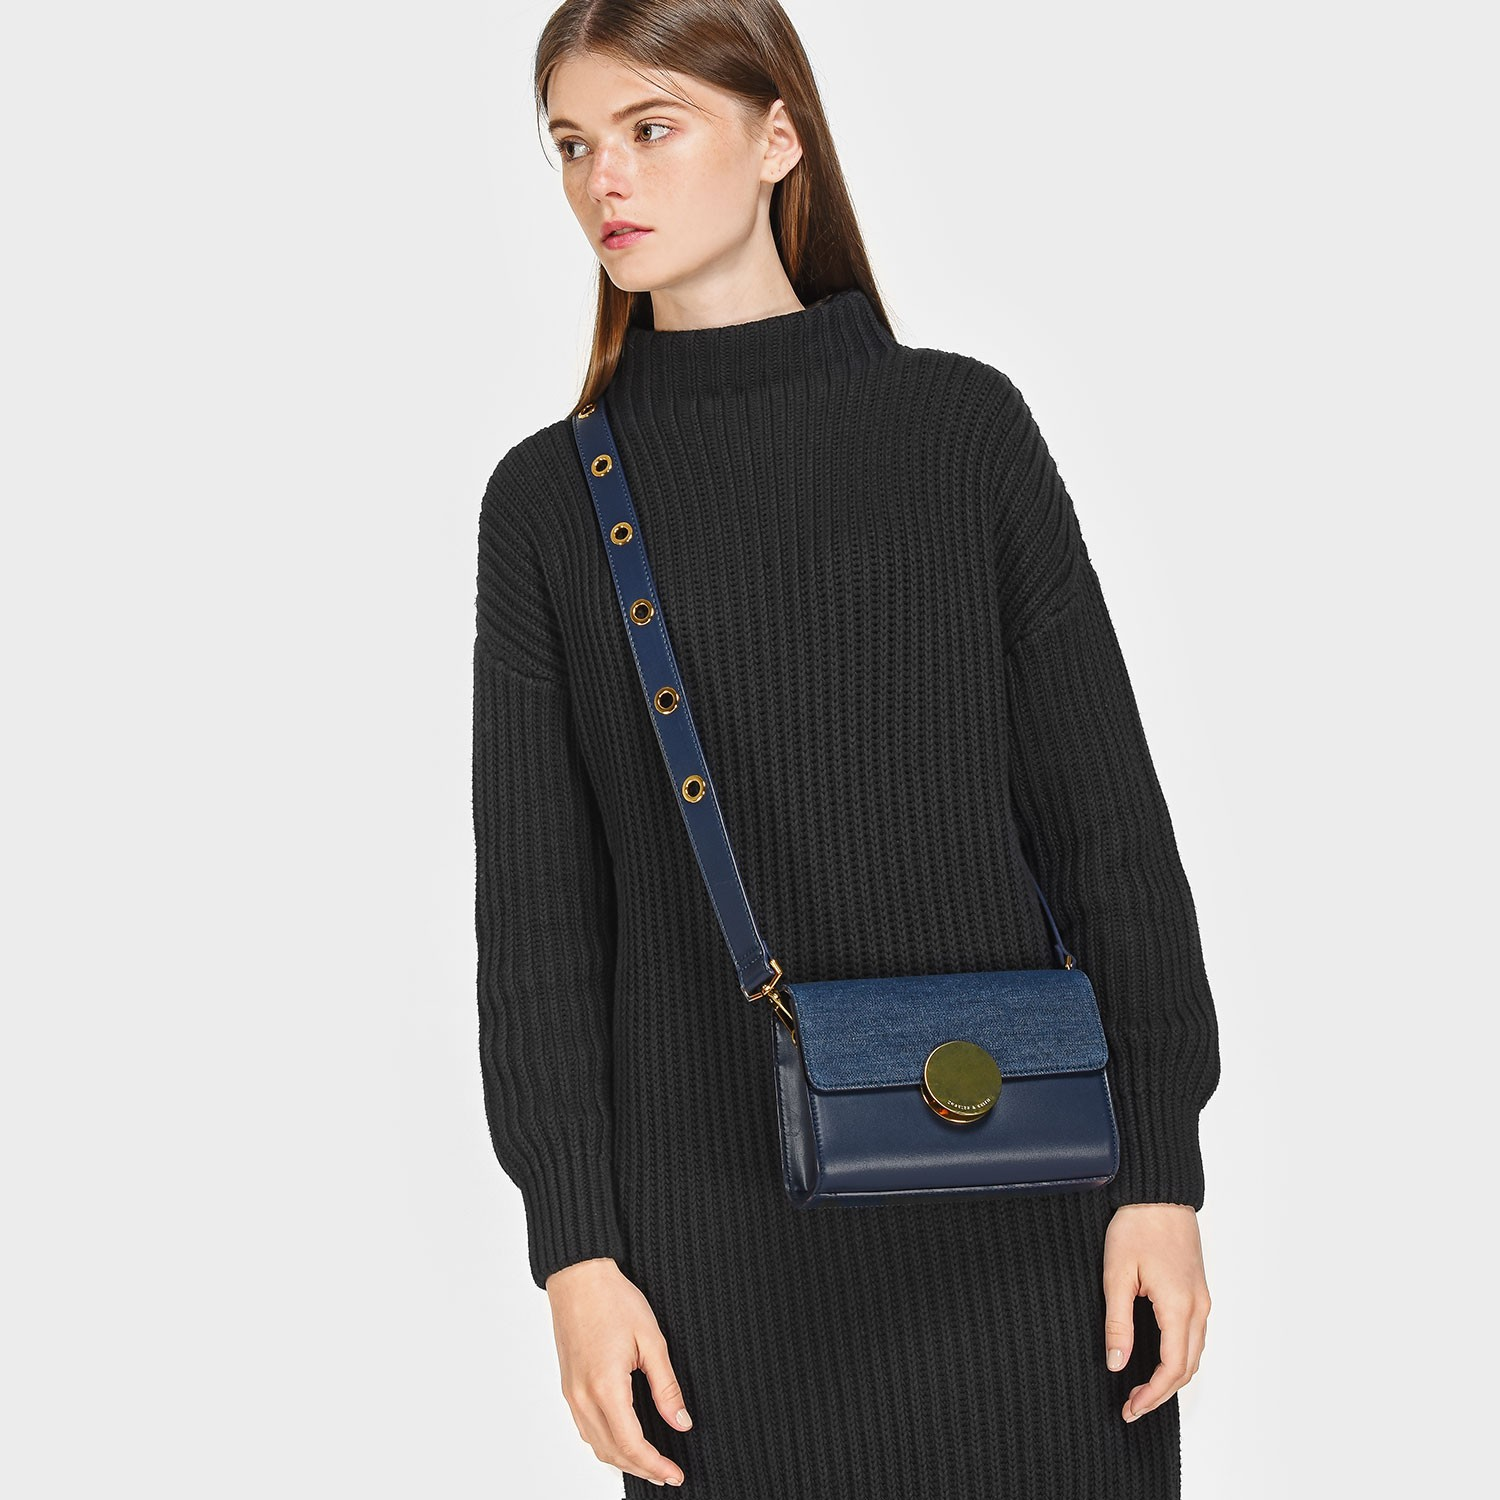 CHARLES AND KEITH CIRCULAR BUCKLE CROSSBODY BAG *น้ำเงิน